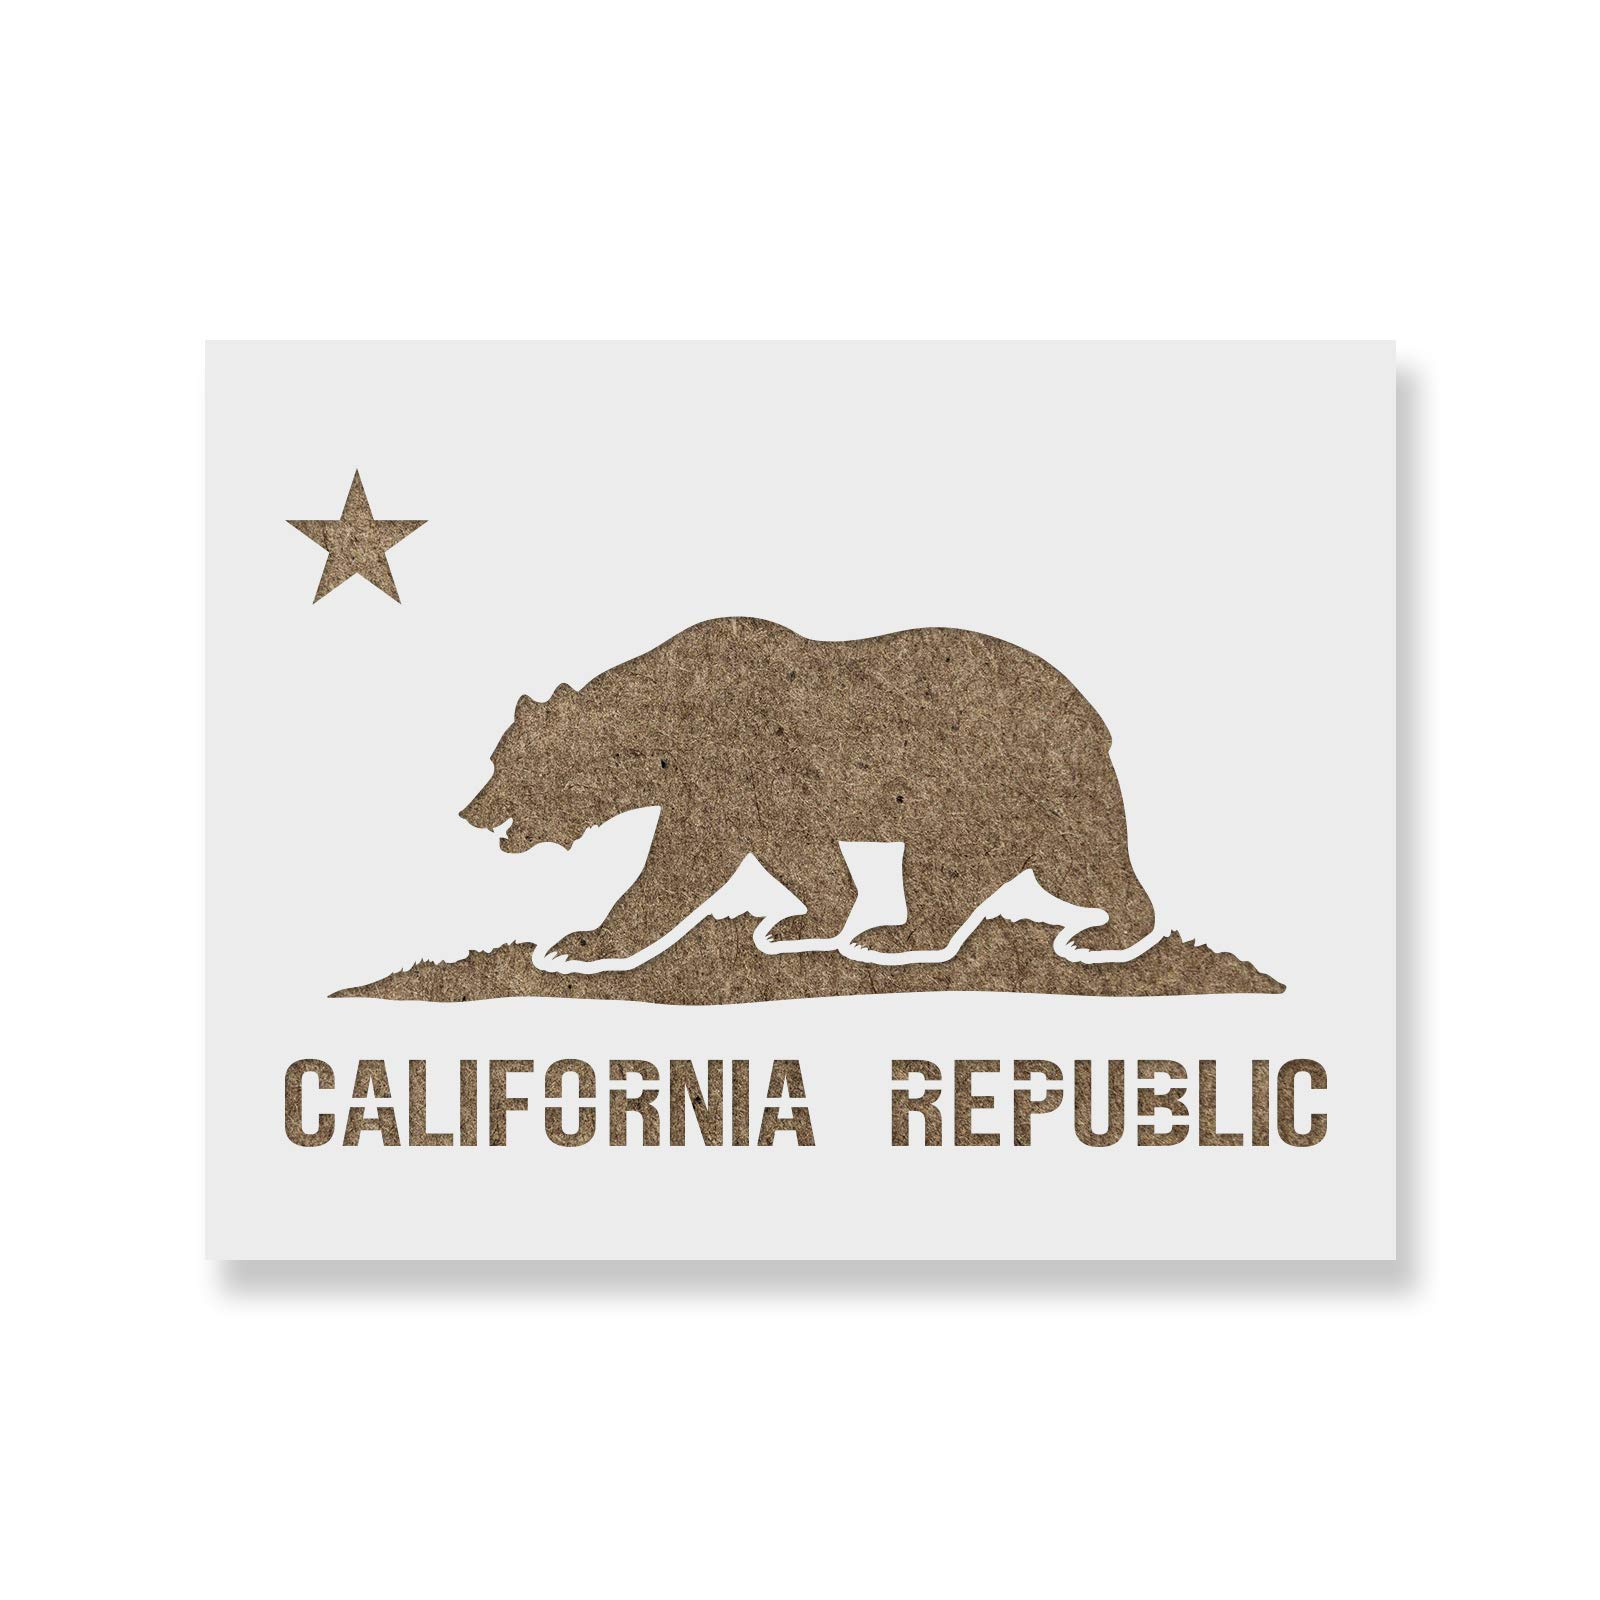 California Flag Stencil Template - Reusable Stencil with Multiple Sizes Available